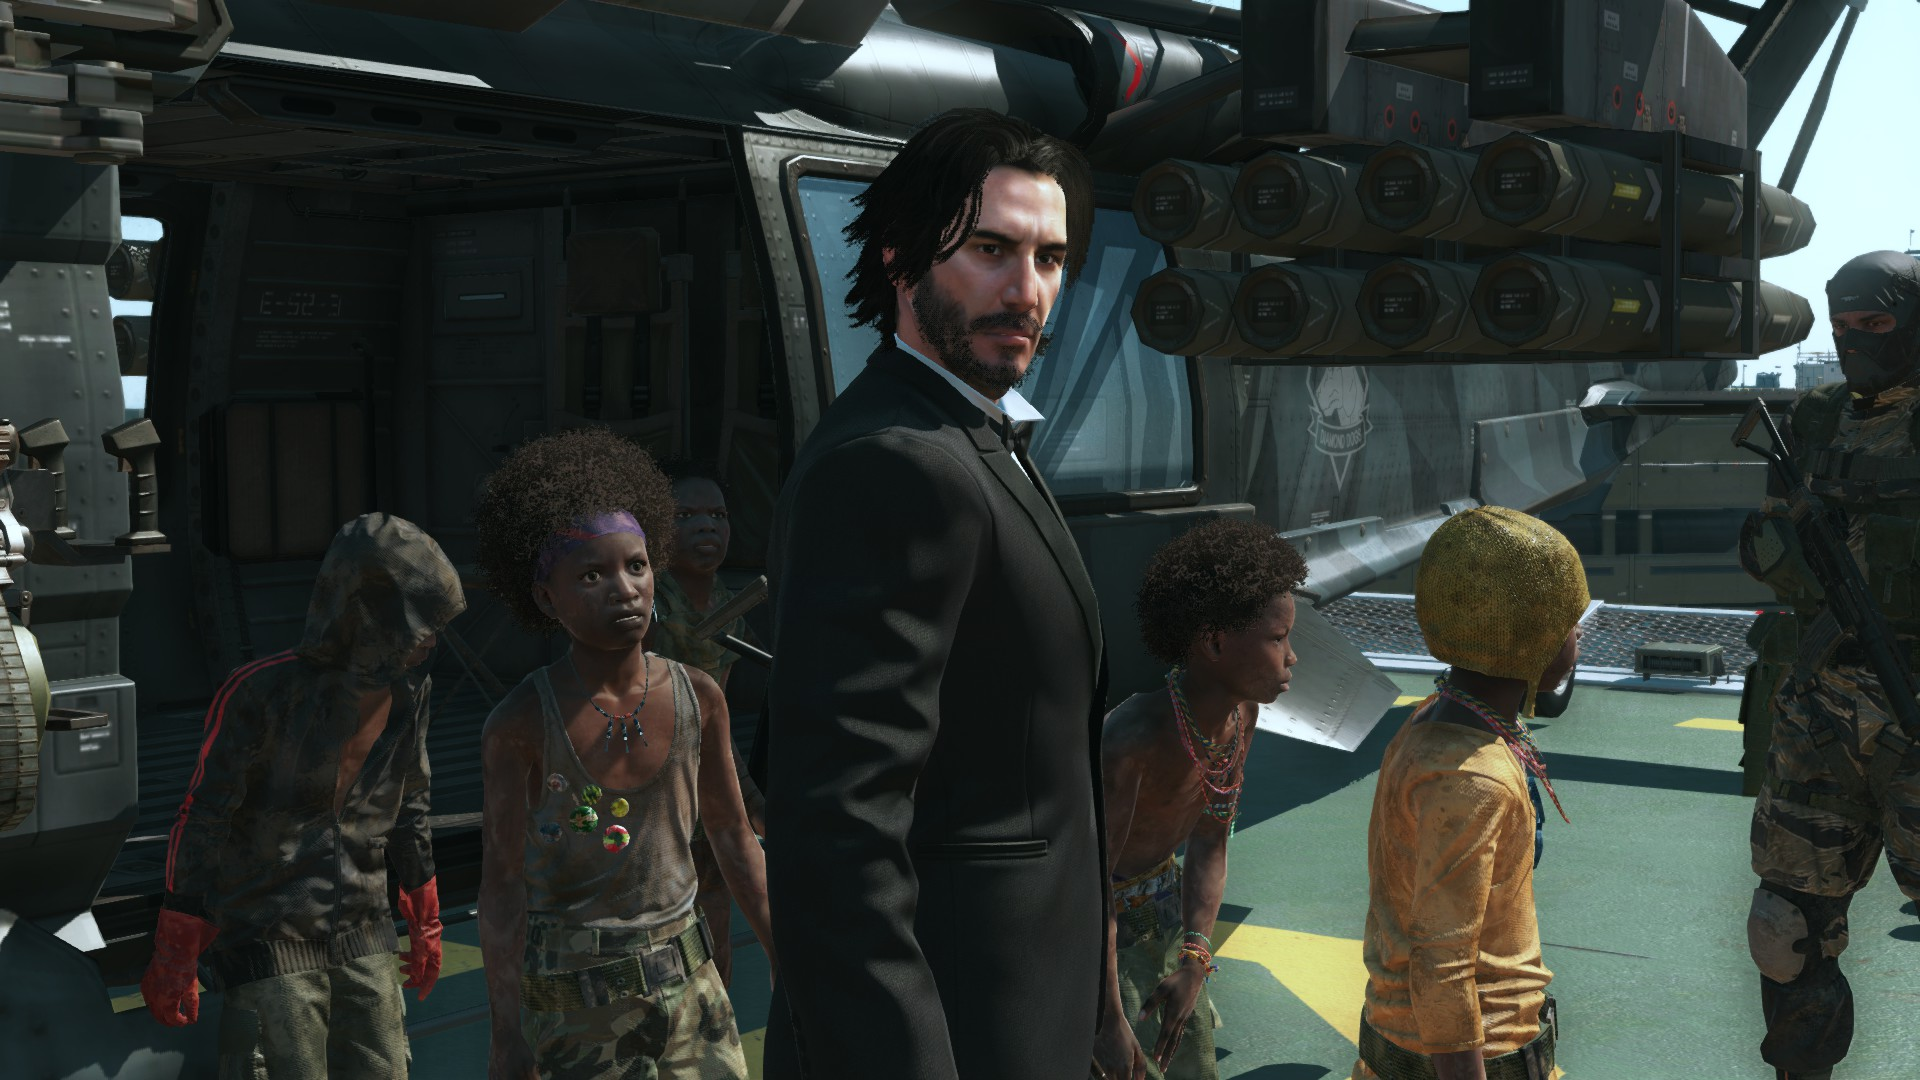 Keanu Reeves Mod Makes 'Metal Gear Solid' Even More Breathtaking